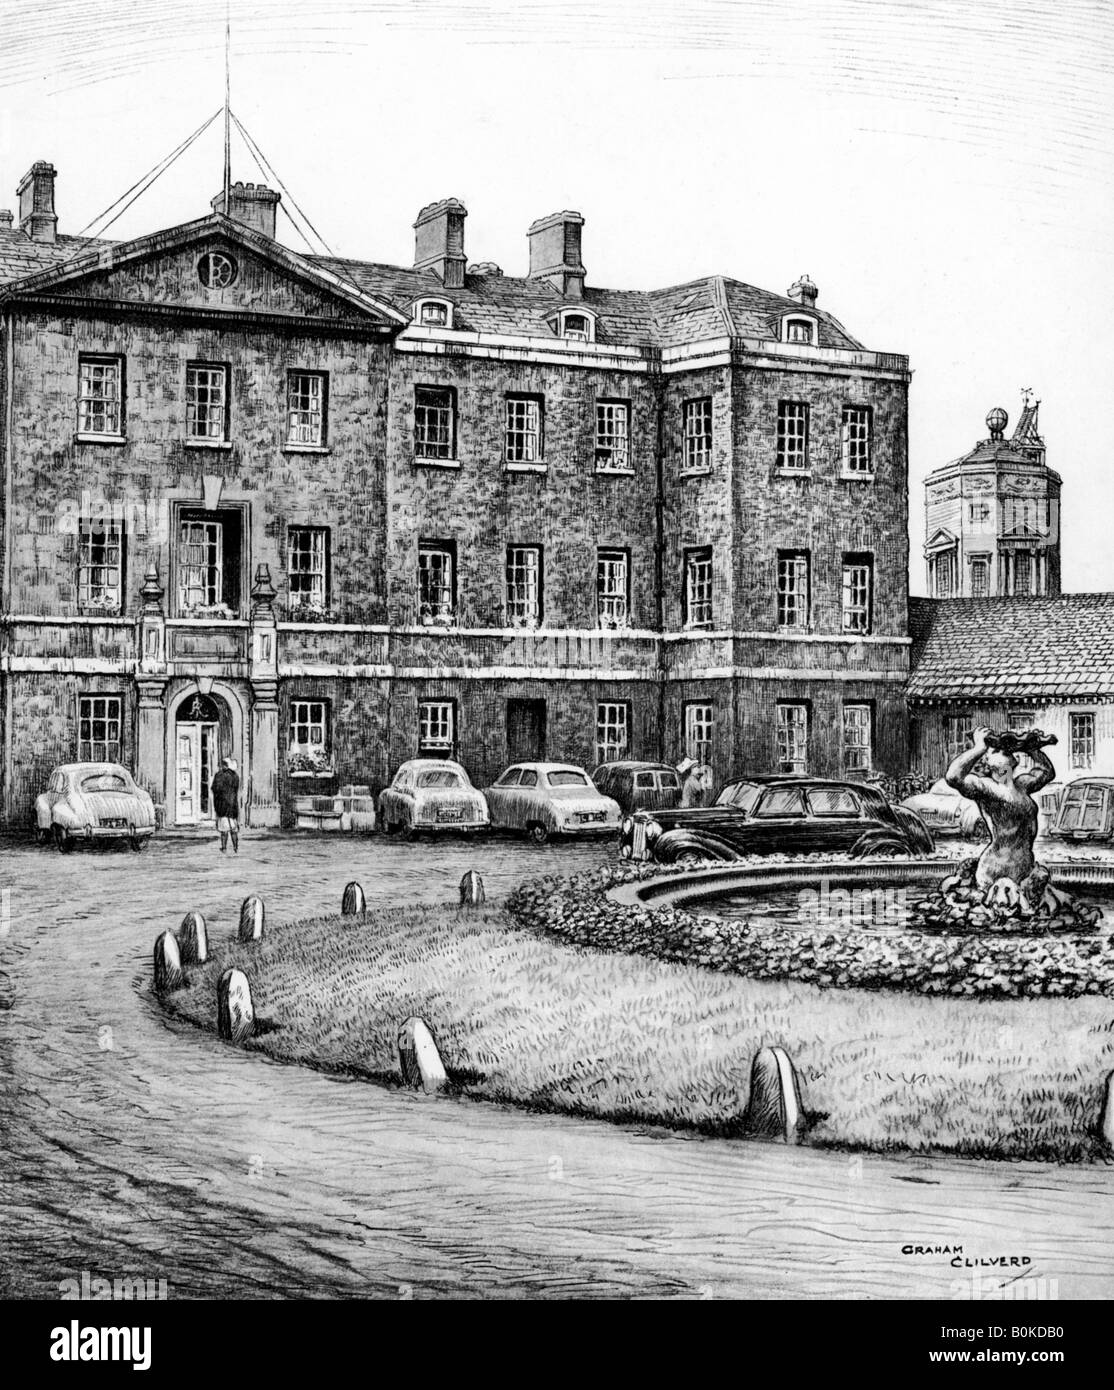 Redcliffe Infirmary, Oxford, c1950-1970. Artist: Graham Clilverd - Stock Image